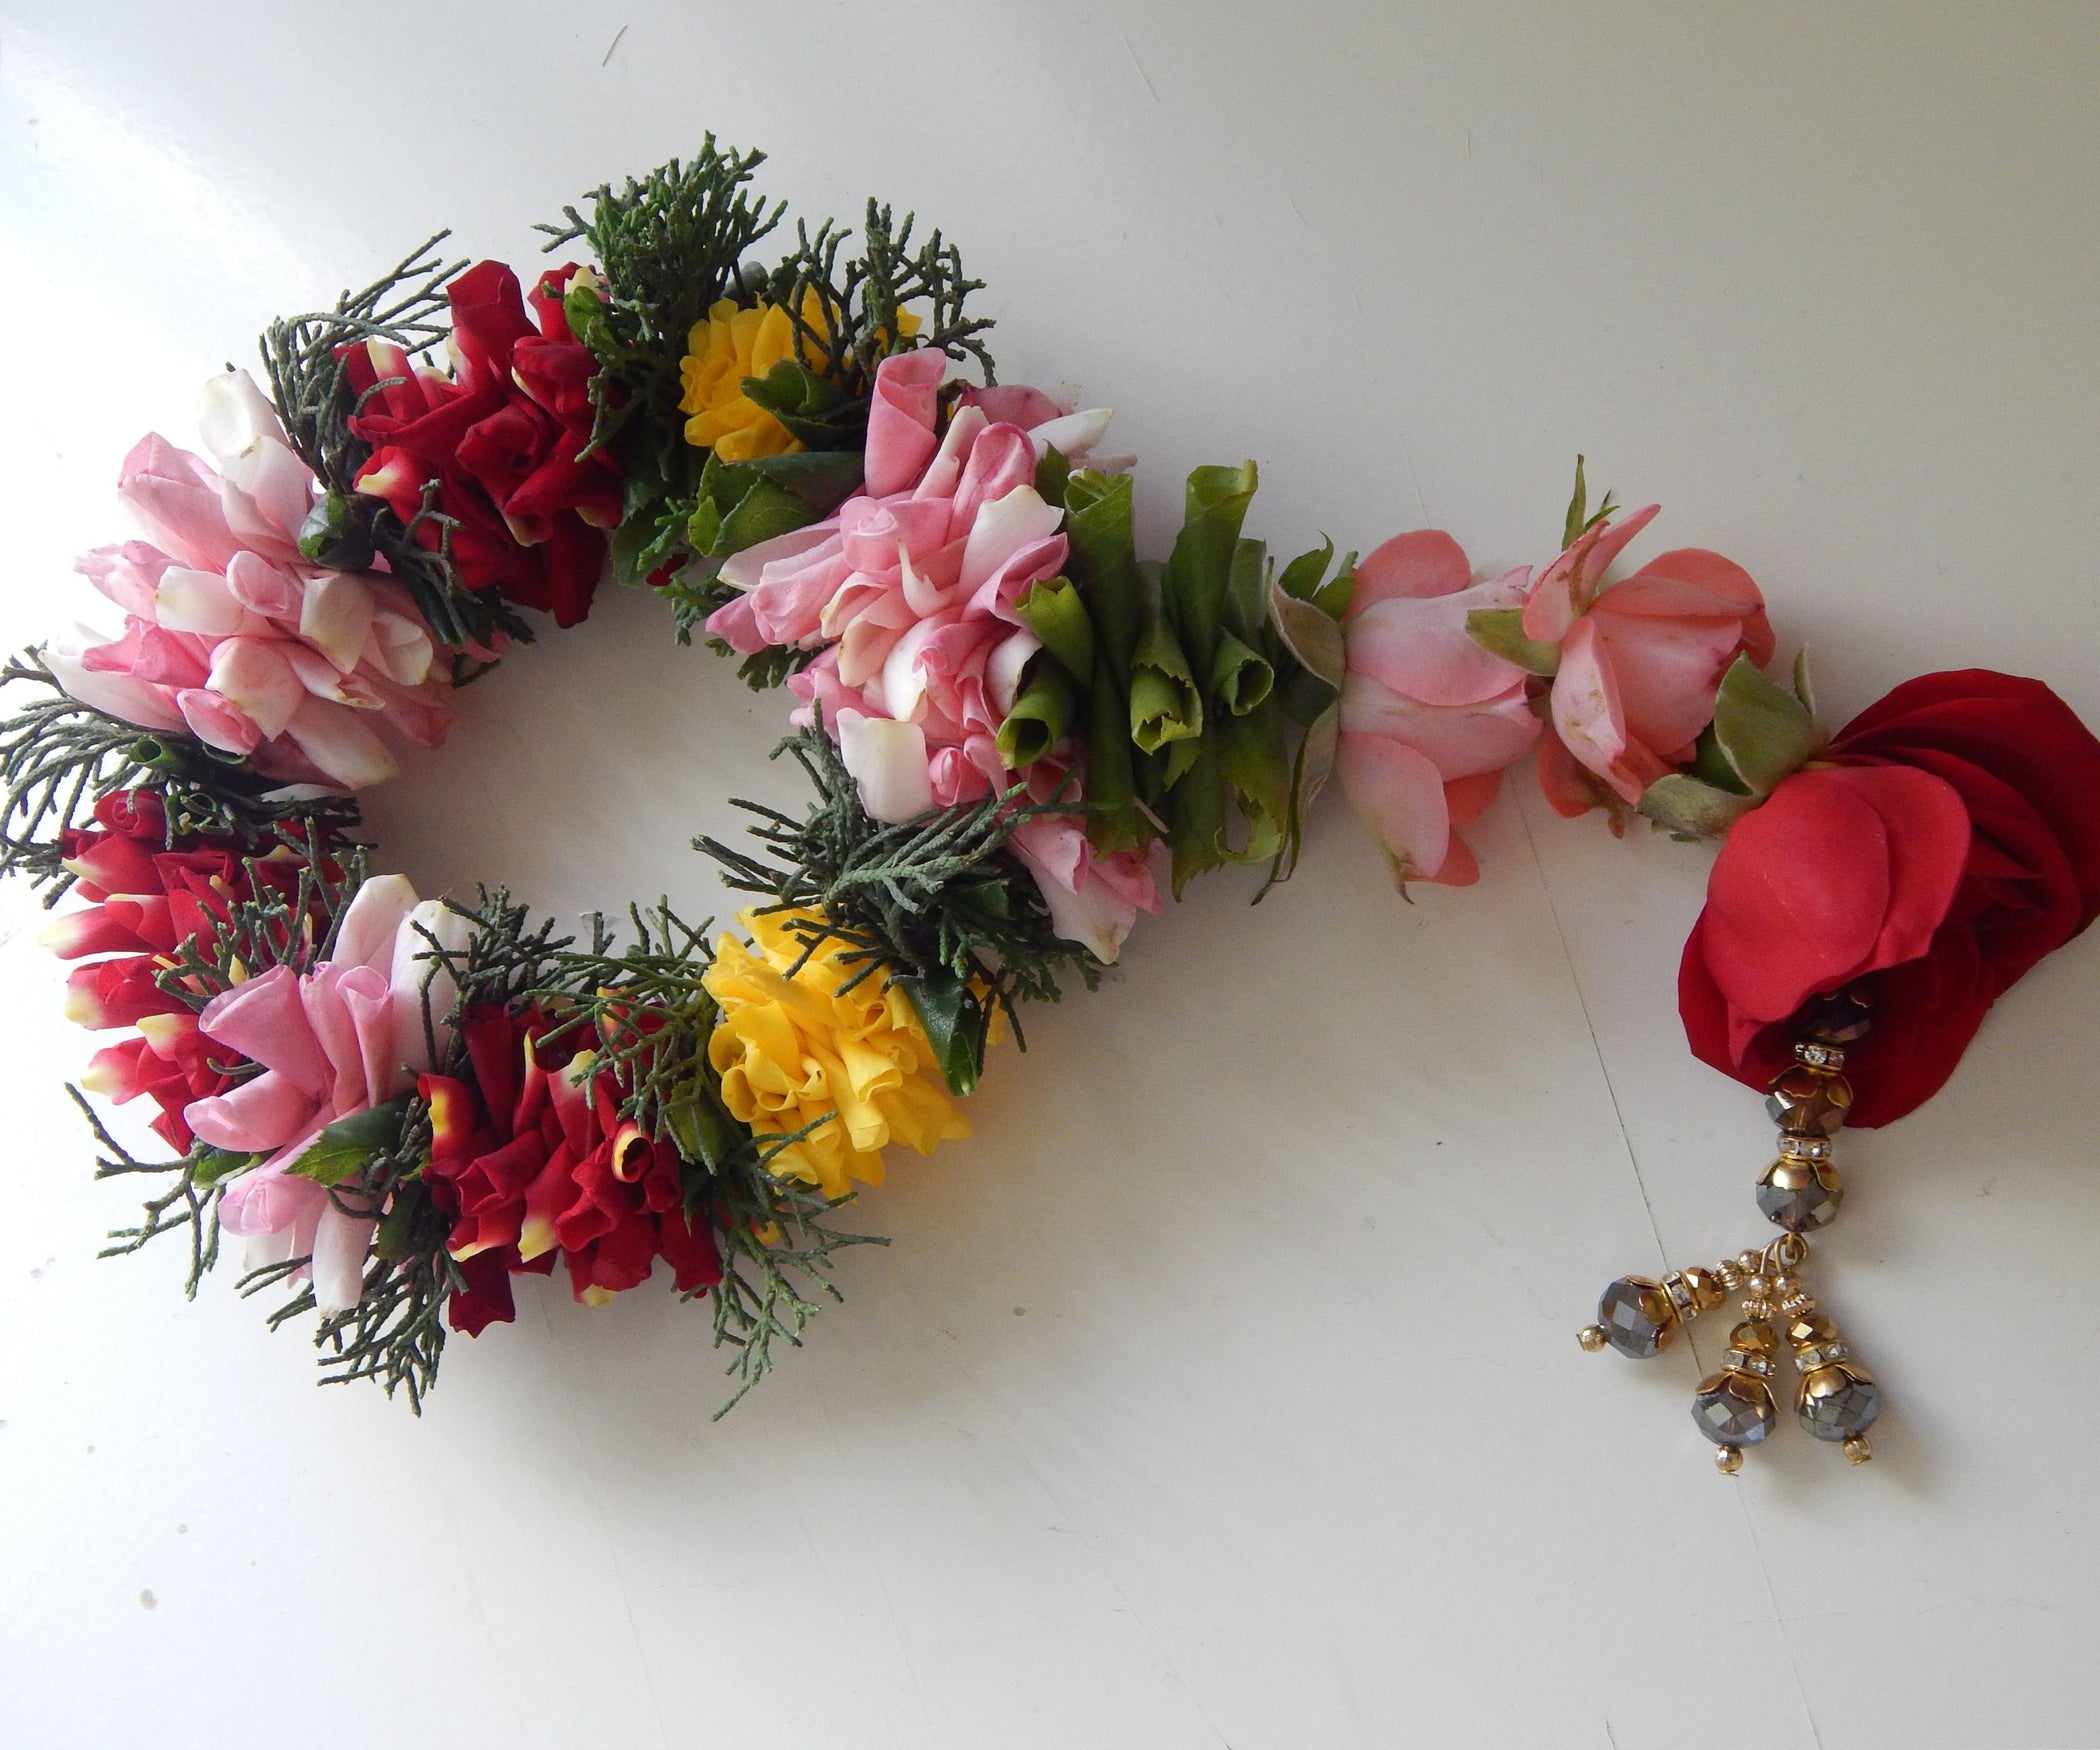 How To Make A Garland With Rose Petals 7 Steps With Pictures